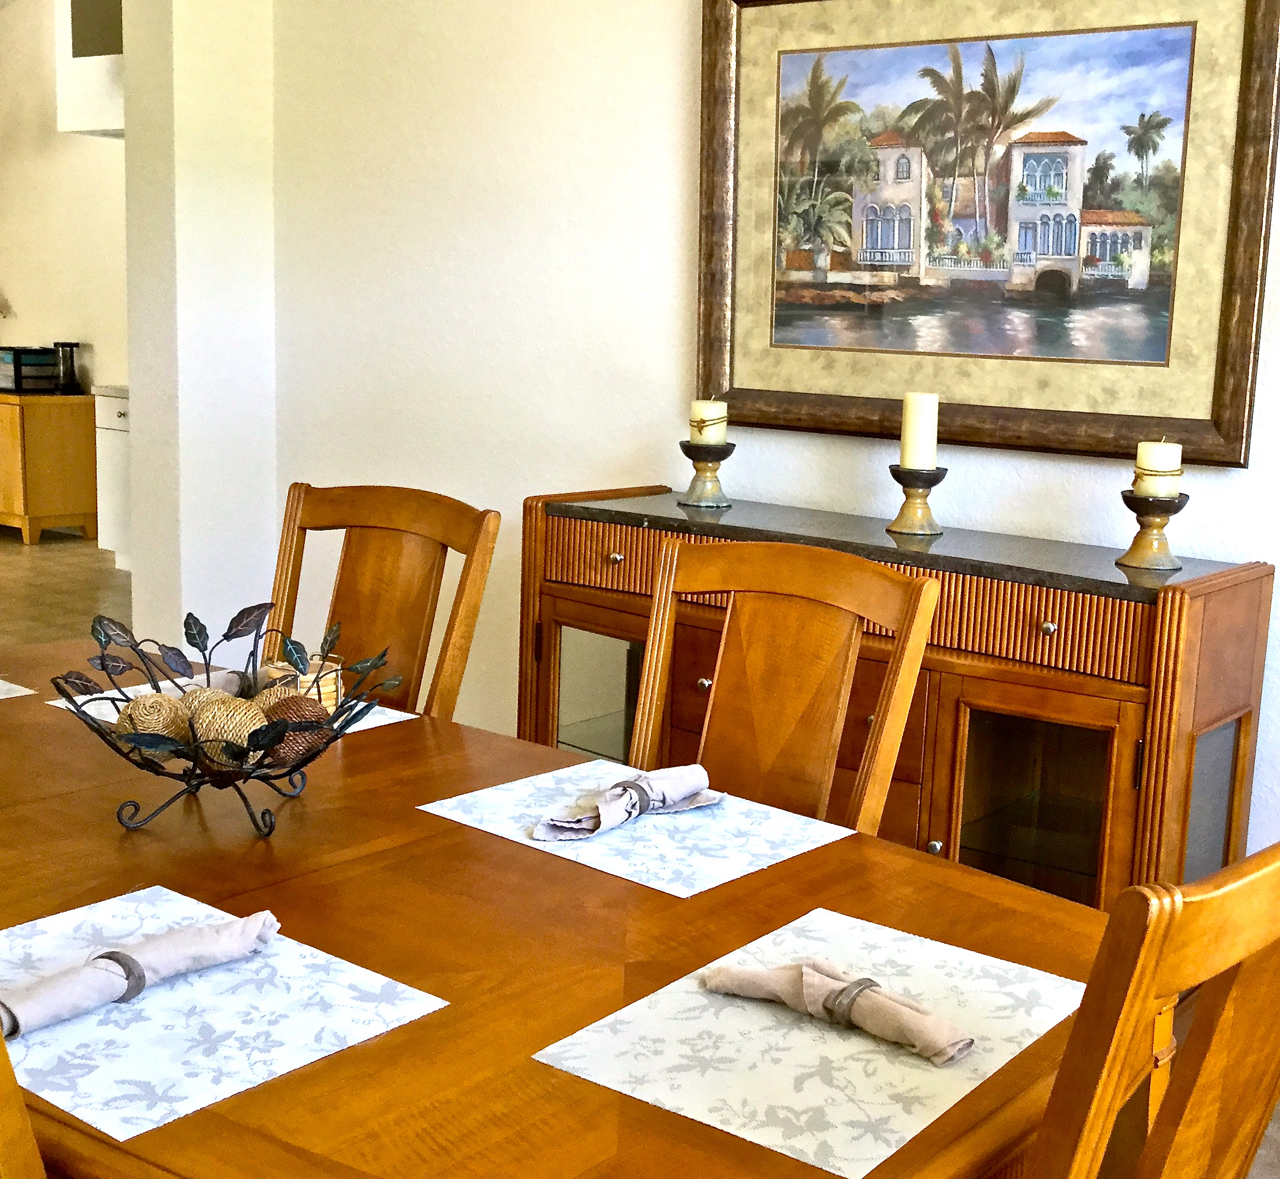 Apartment The Perfect Home in South Gulf Cove  Fabulous villa with spa  pool and 2 master suites  WOW  photo 22766071